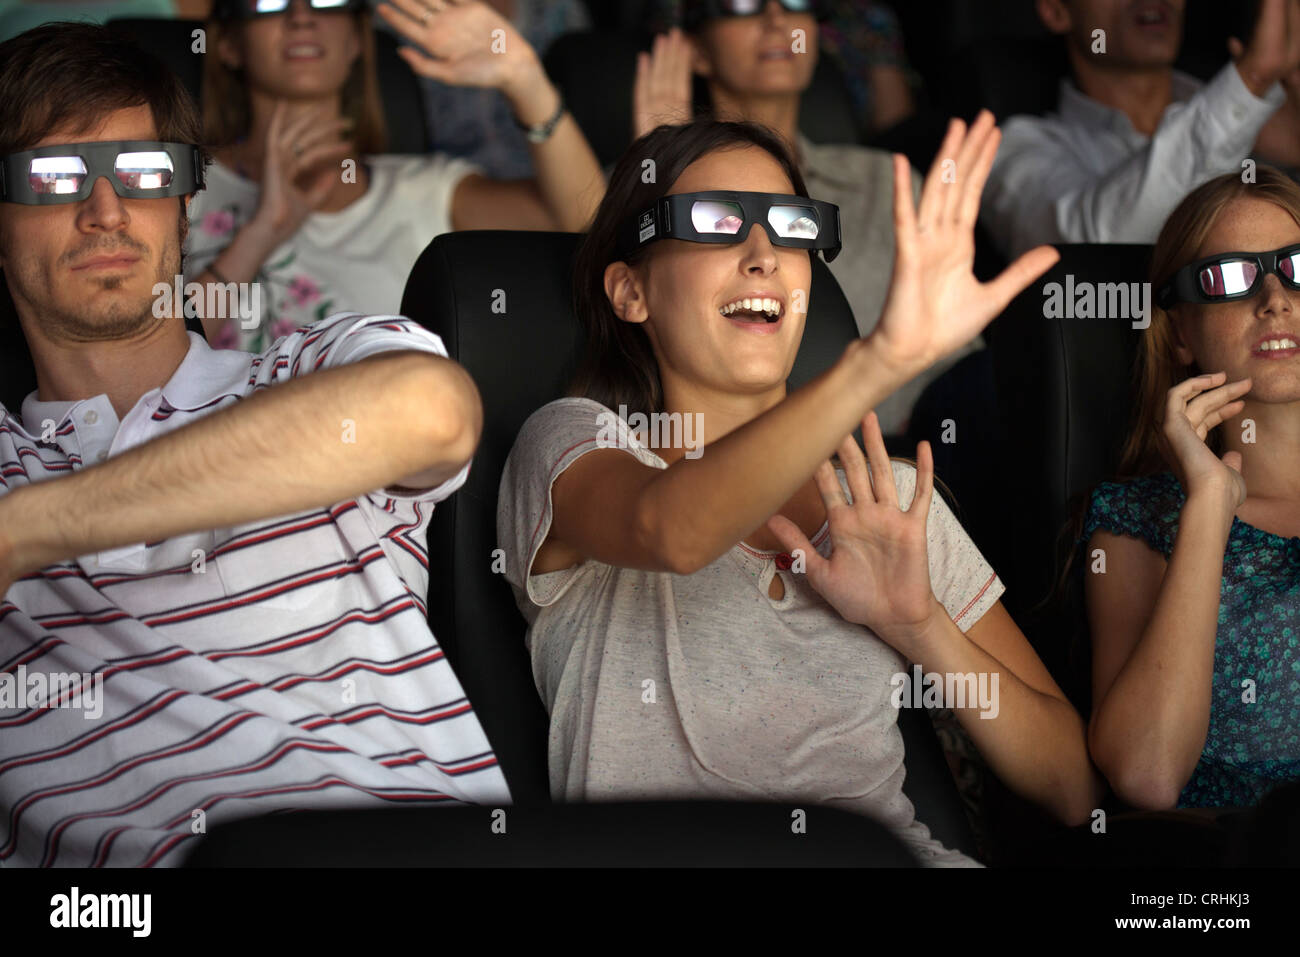 Audience enjoying 3-D movie in theater - Stock Image